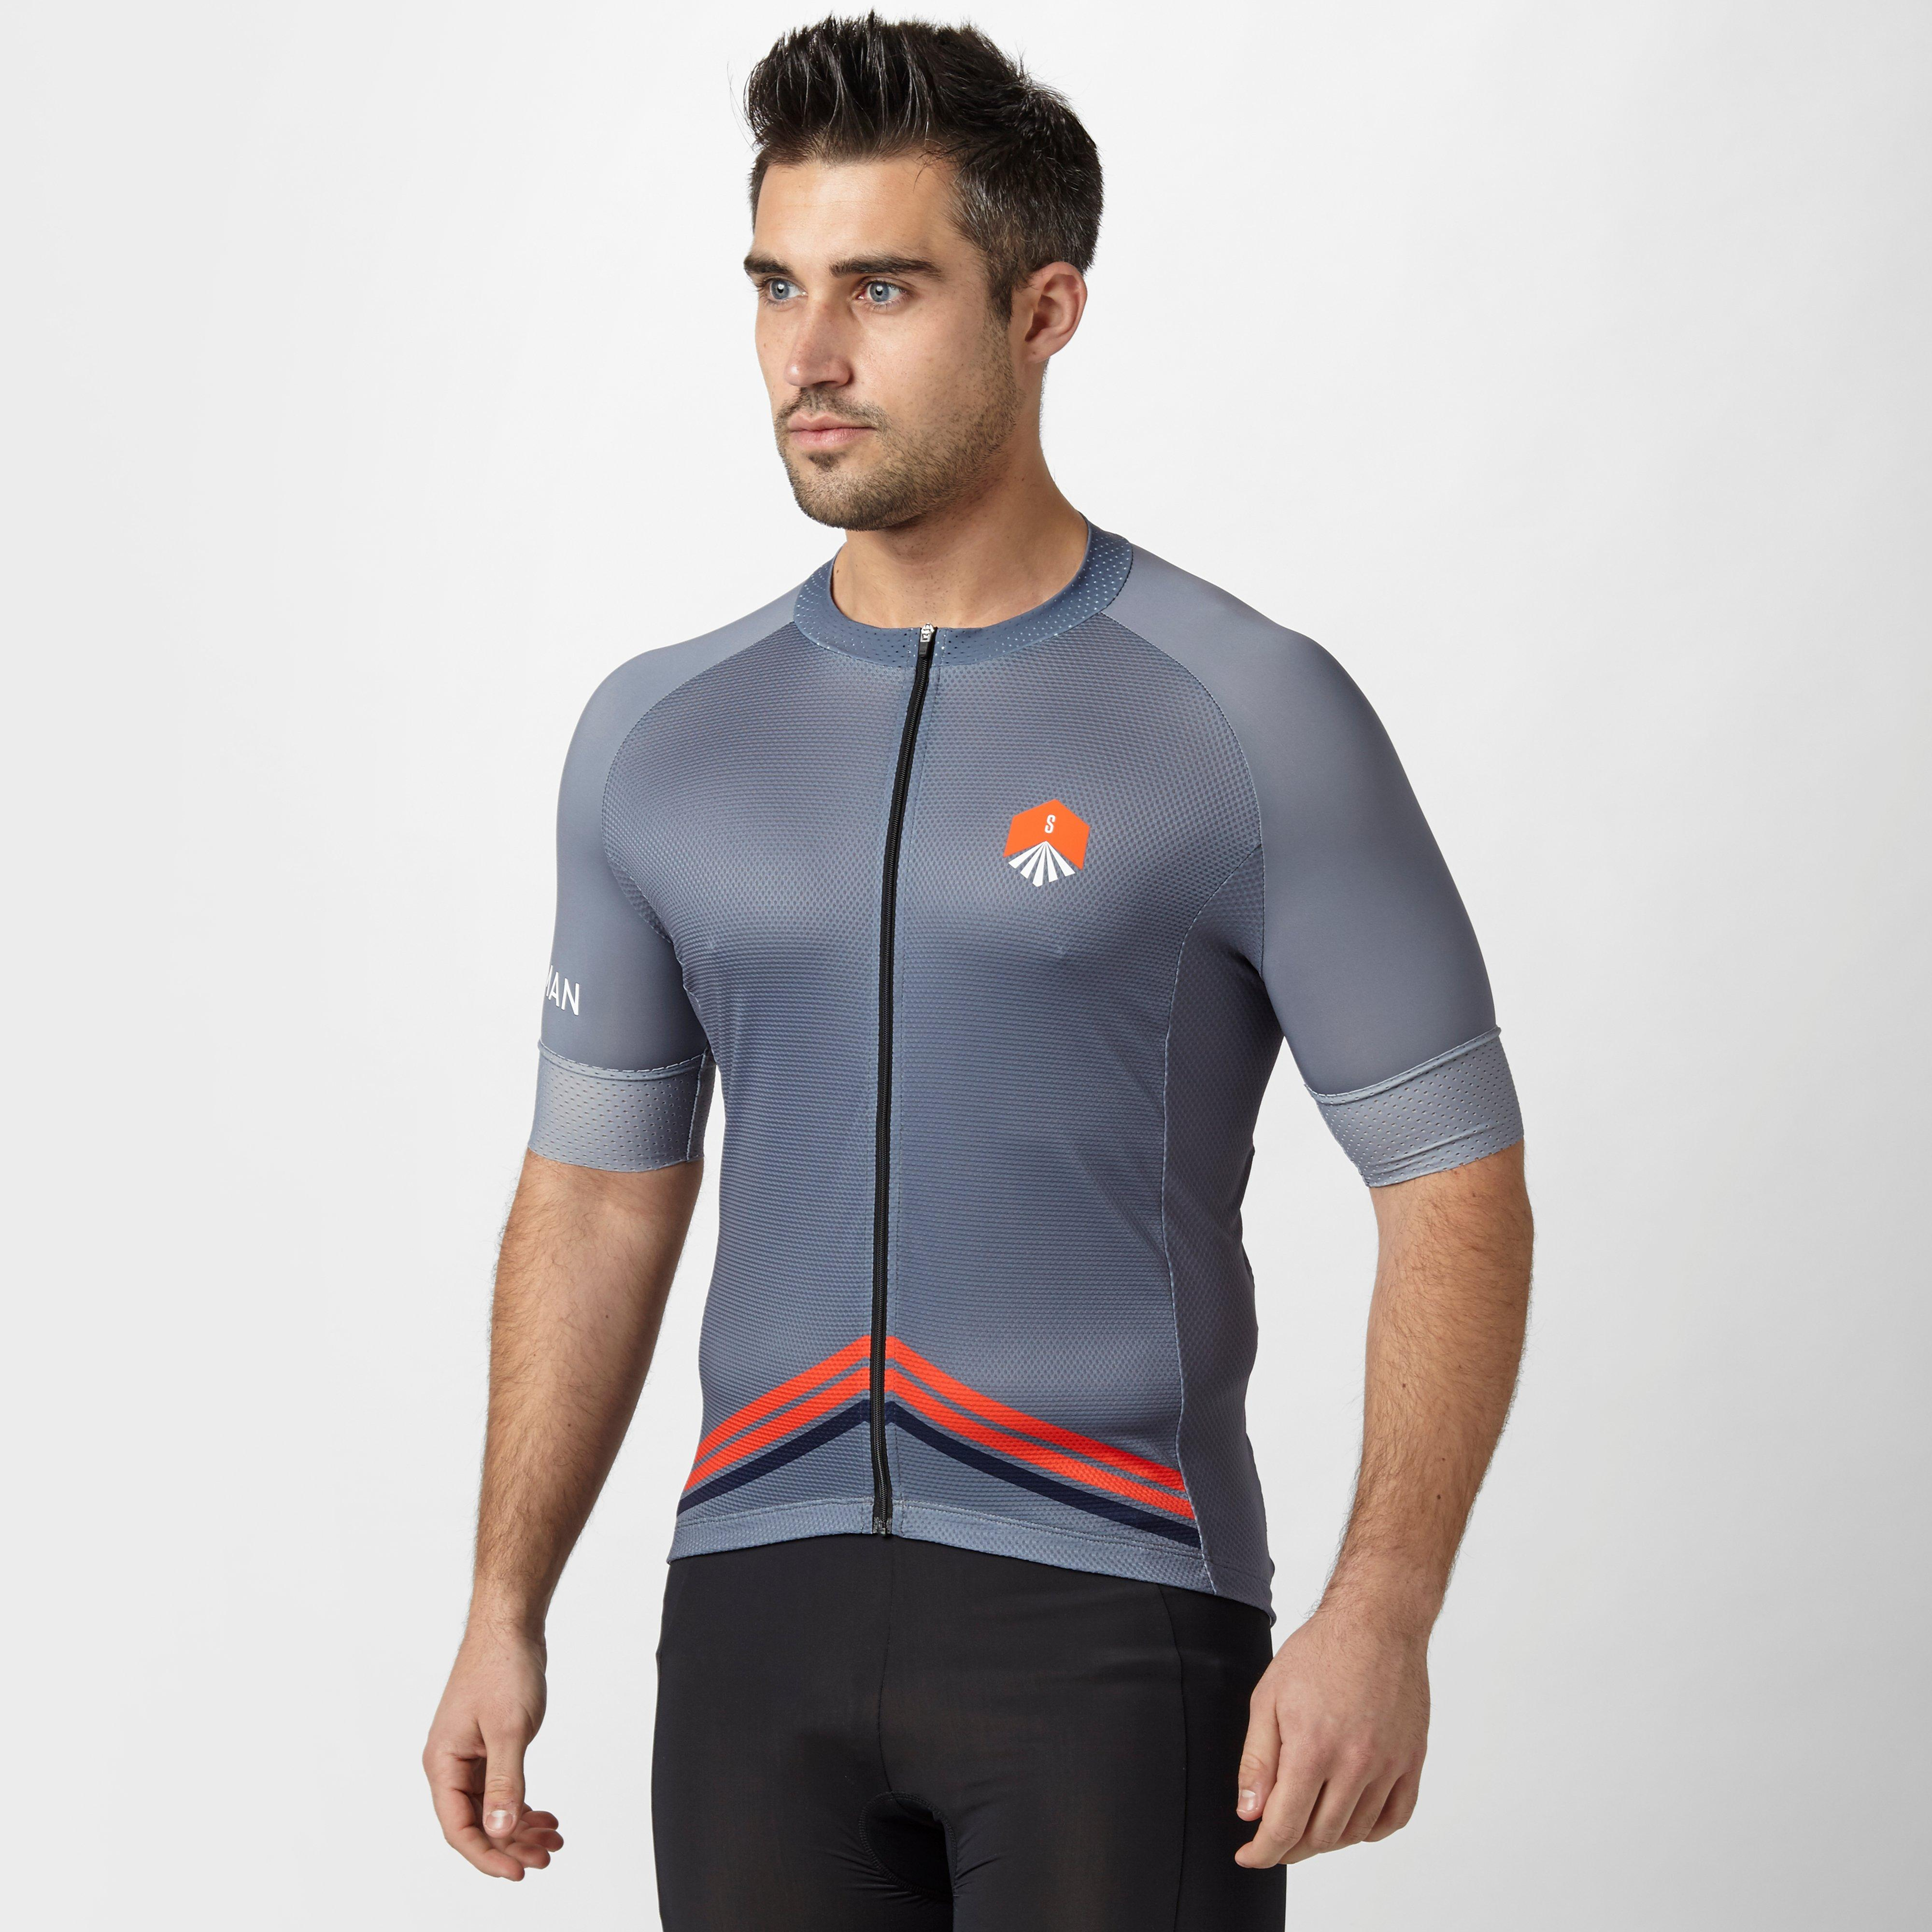 Stockists of Spokesman Men's Tracker Cycling Jersey, Grey